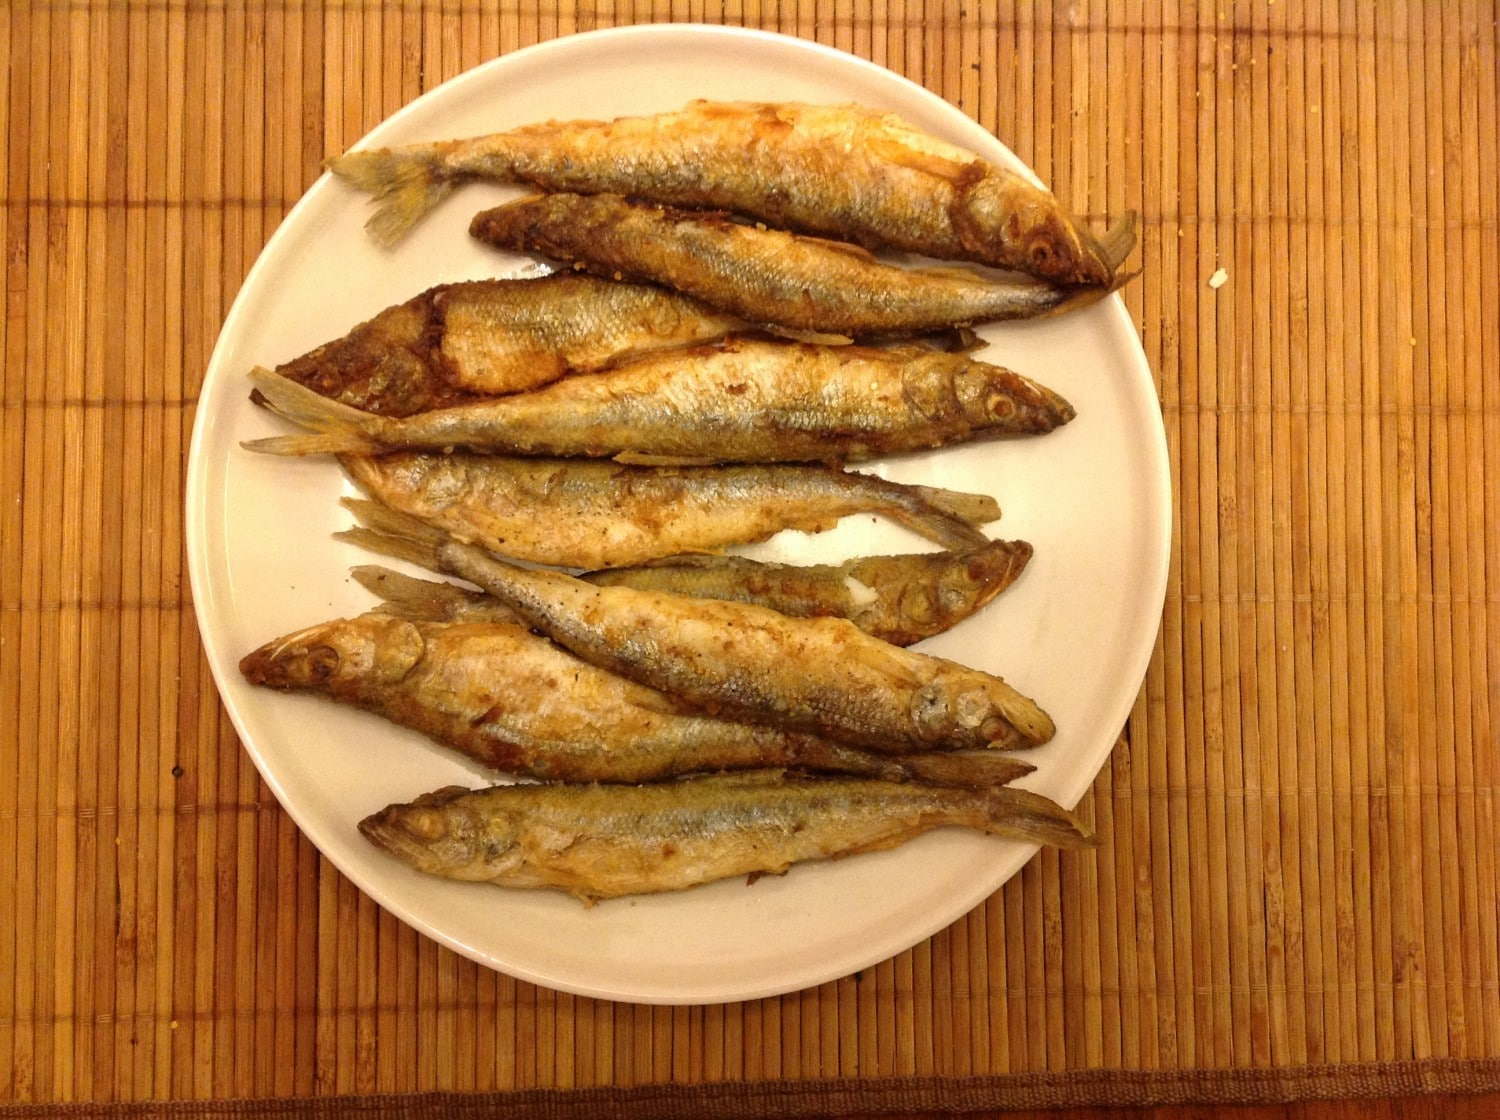 A plate of koryushka fish